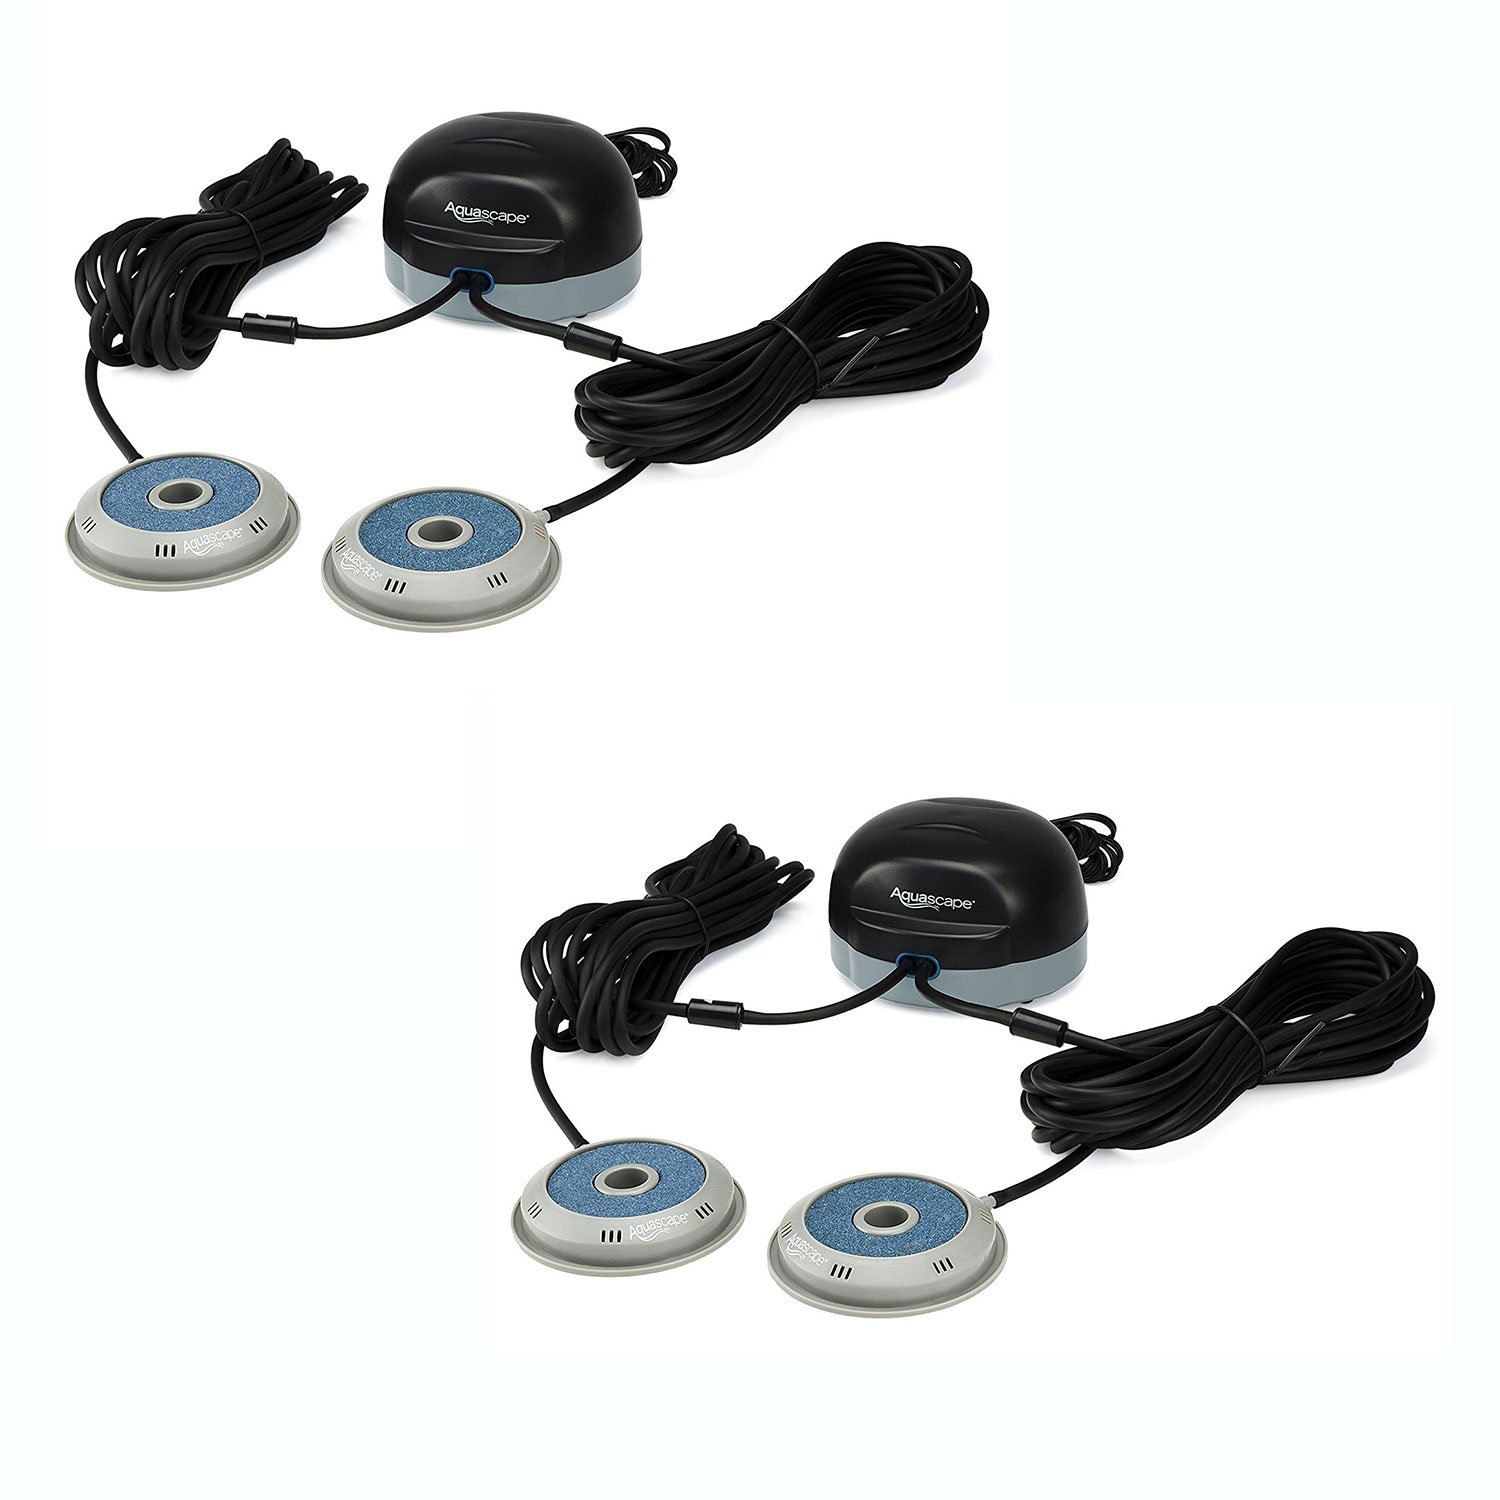 Aquascape 75000 Double Pond Water Aerator Air Pump Outlet System Kit (2 Pack)